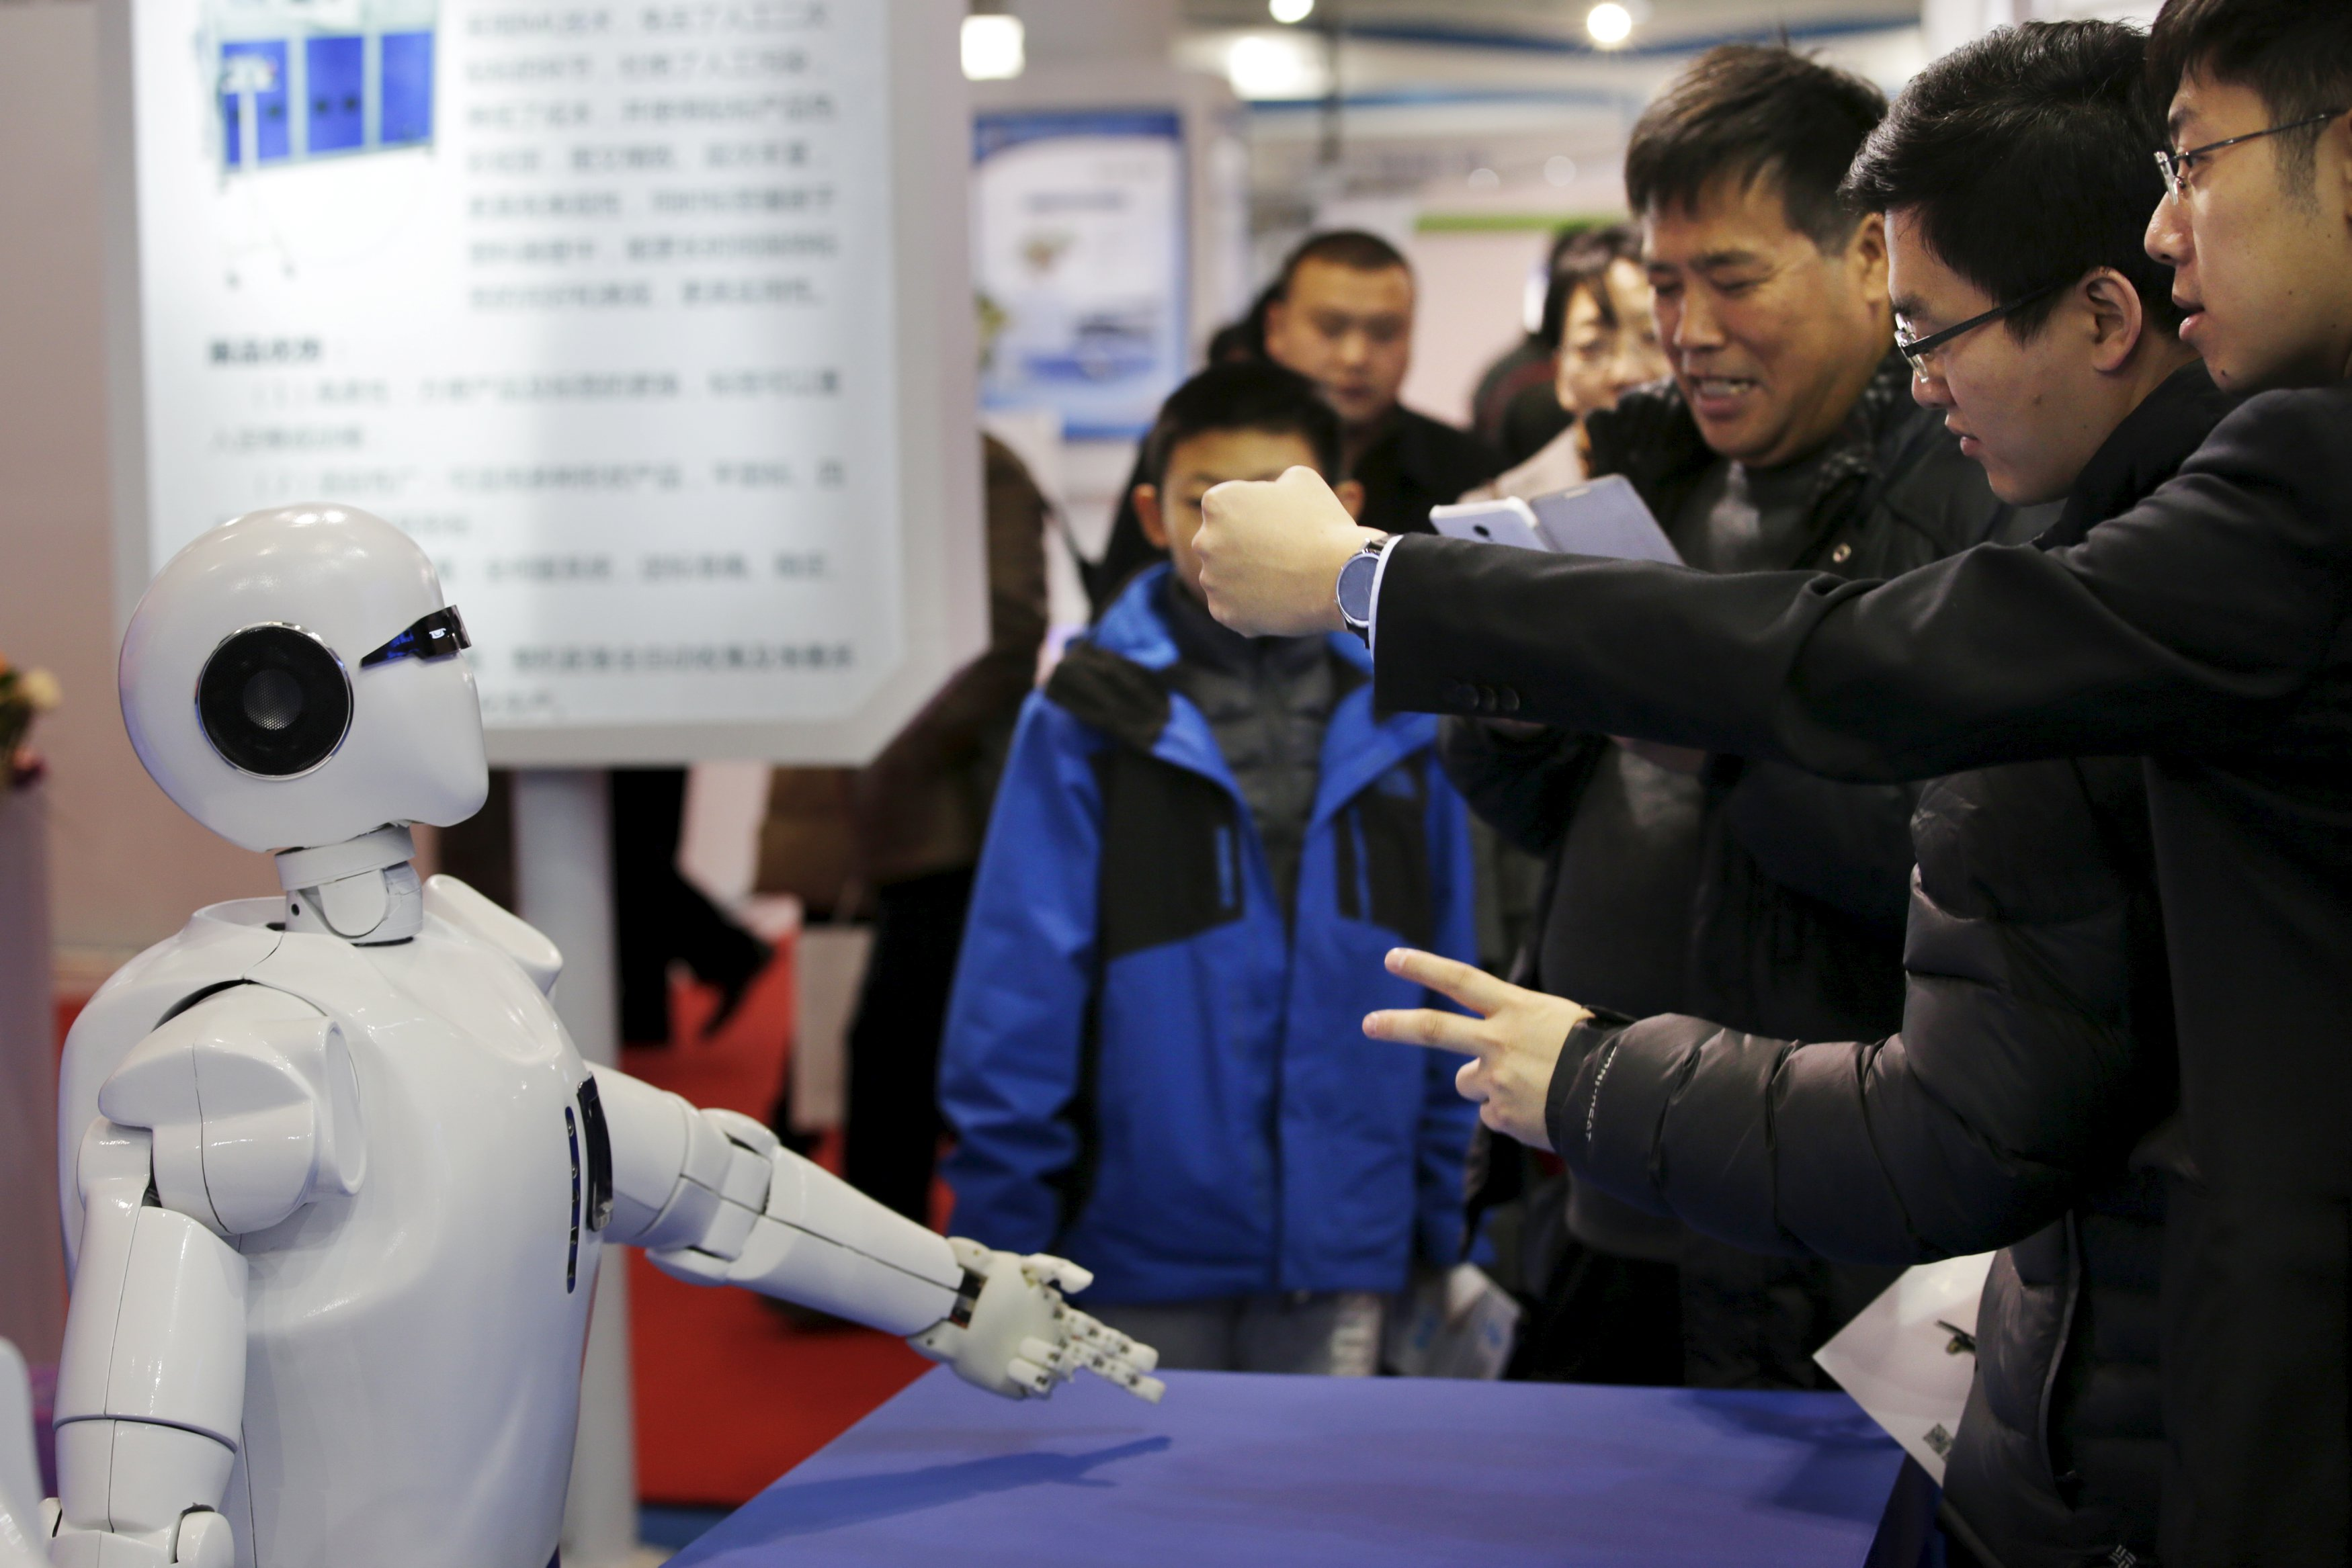 Visitors gesture to a KINGER Robot at the World Robot Exhibition during the World Robot Conference in Beijing, China, November 24, 2015. The conference, which kicked off in Beijing on Monday, is a three-day event including a forum, an exhibition and a robot contest for youths, Xinhua News Agency reported. Photo: Reuters